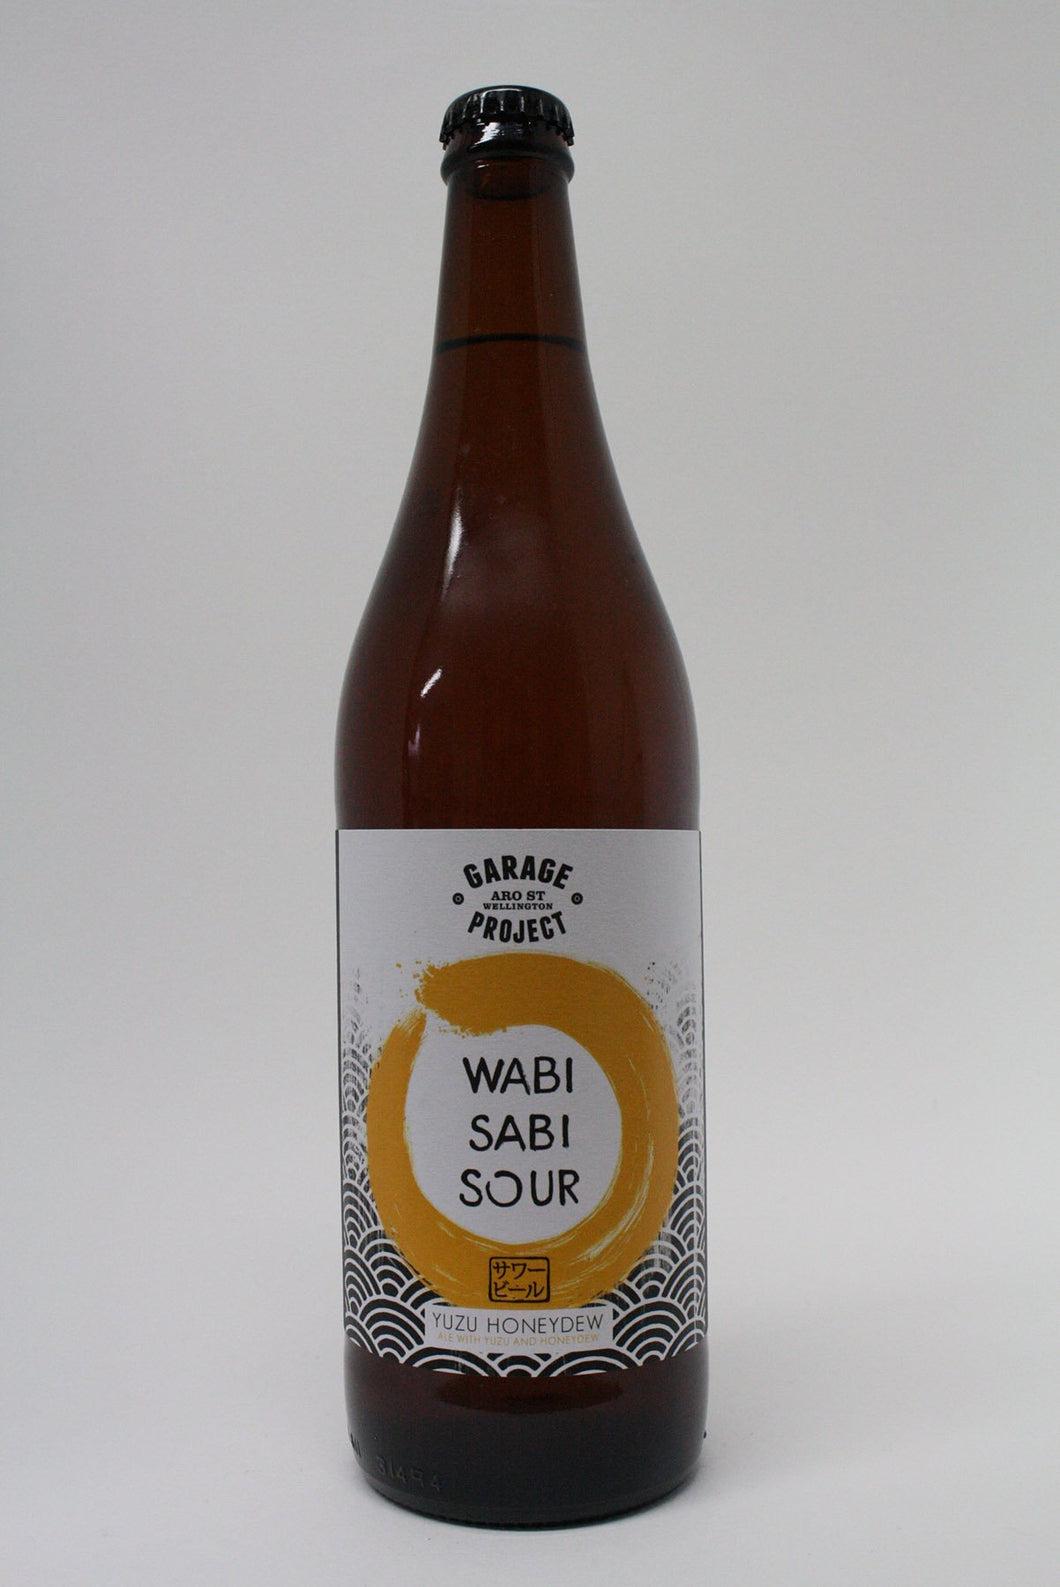 Garage project - Wabi Sabi Sour 650ml